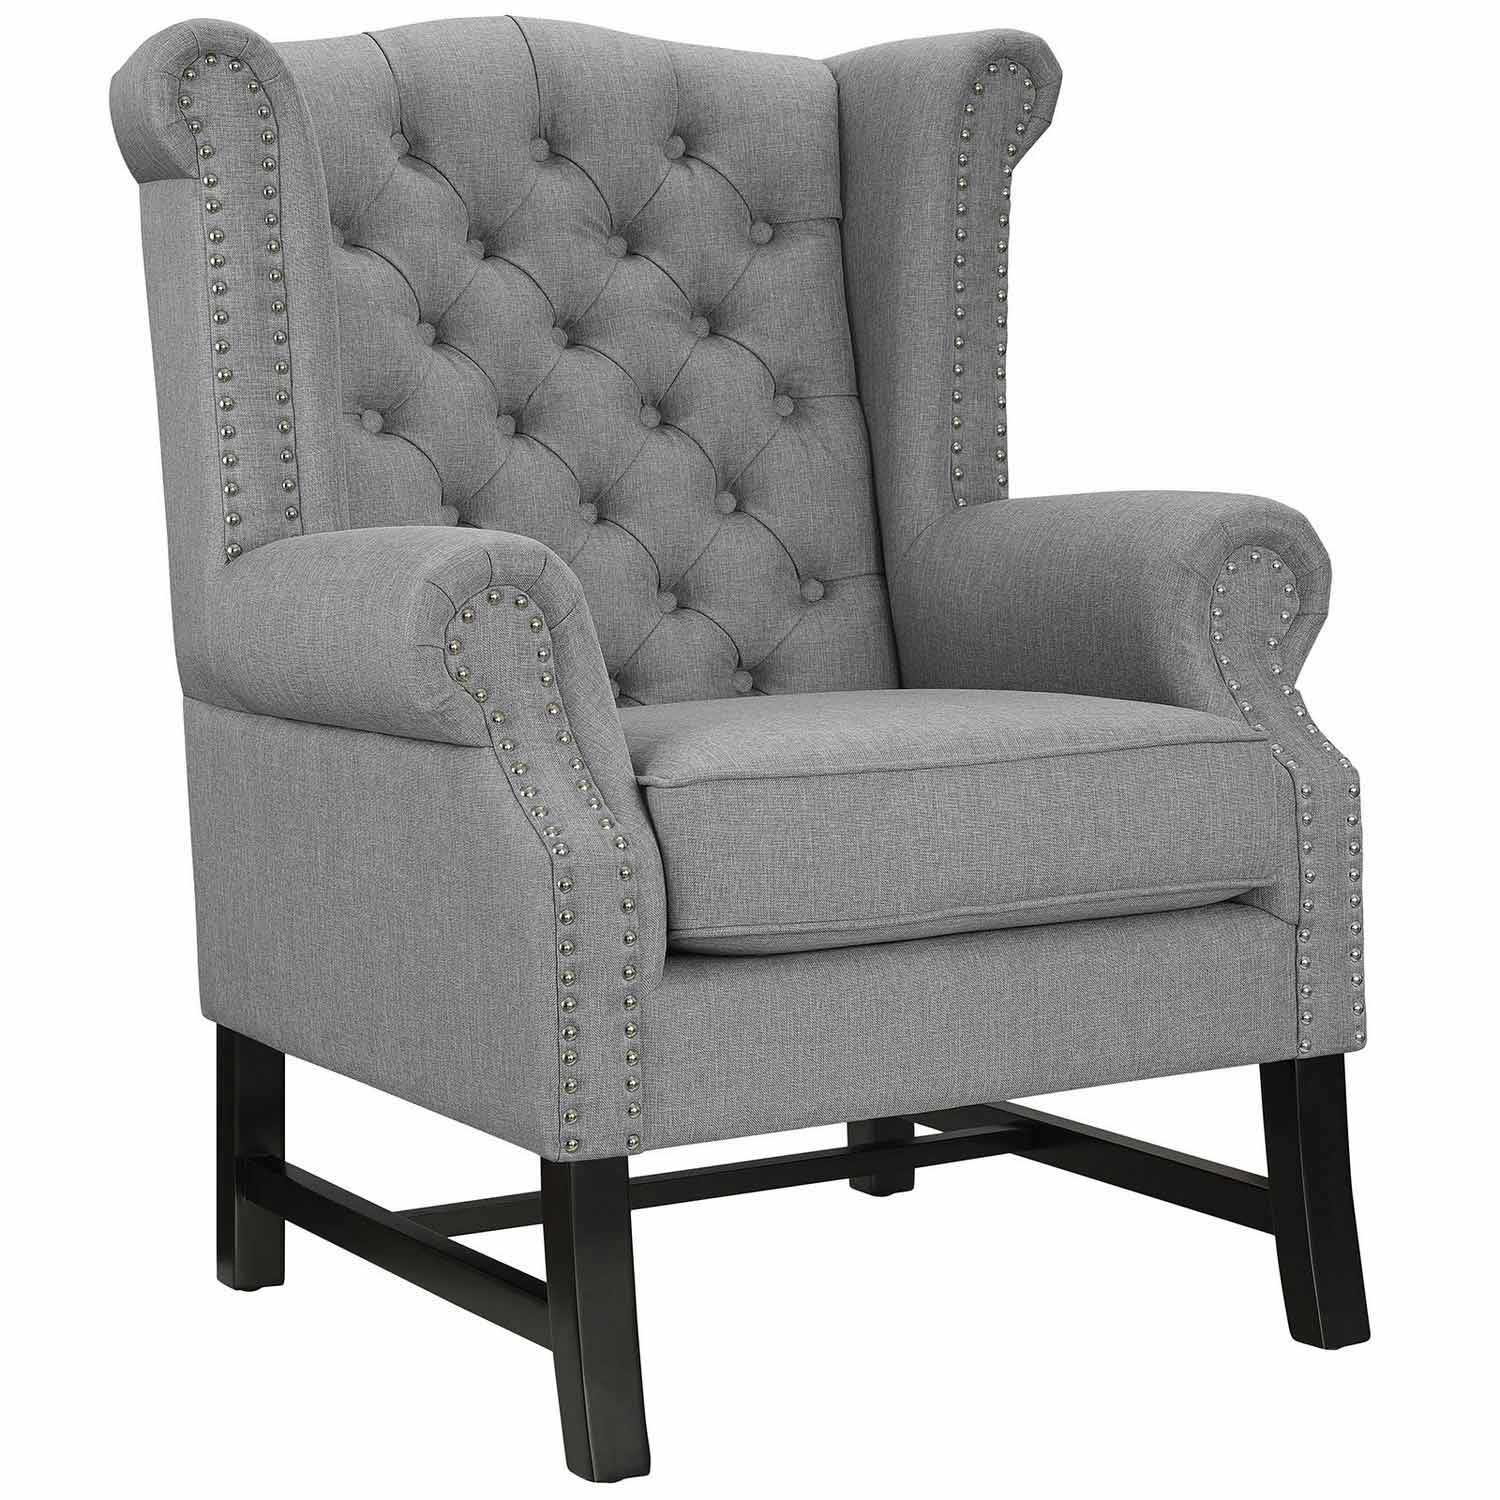 Modway Steer Fabric Arm Chair - Light Gray